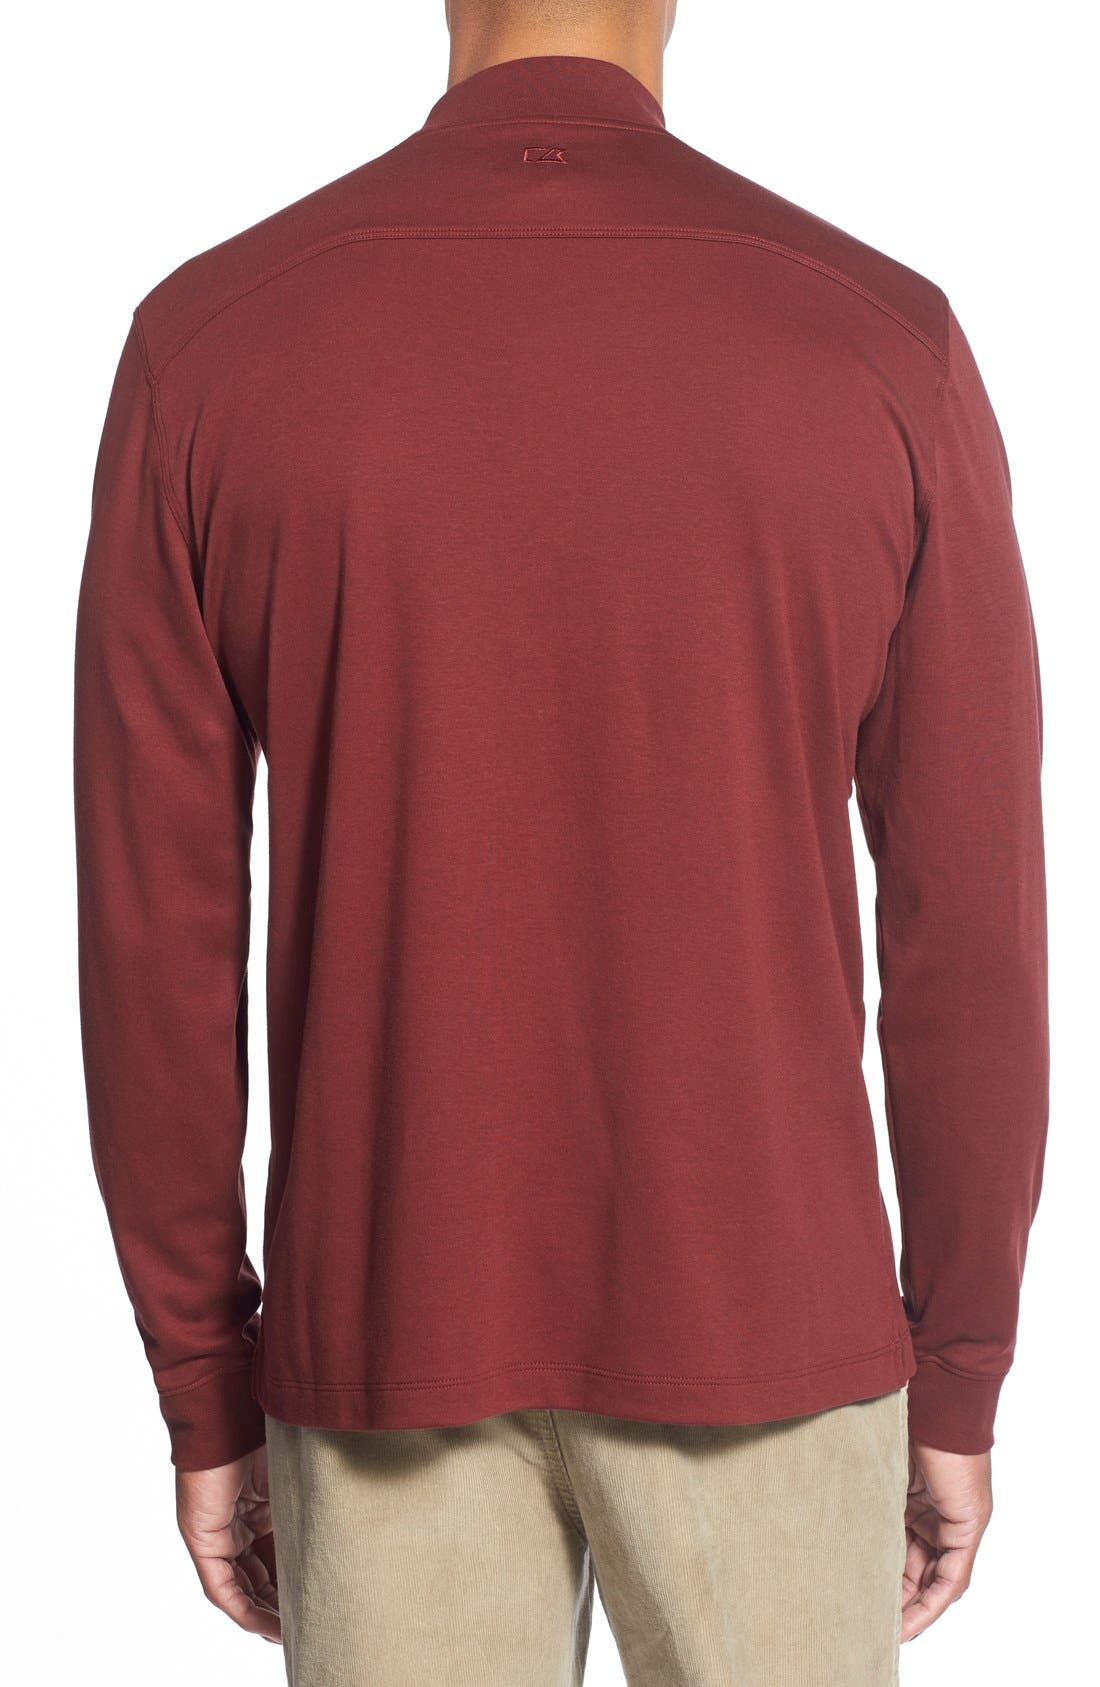 Alternate Image 2  - Cutter & Buck 'Belfair' Long Sleeve Mock Neck Pima Cotton T-Shirt